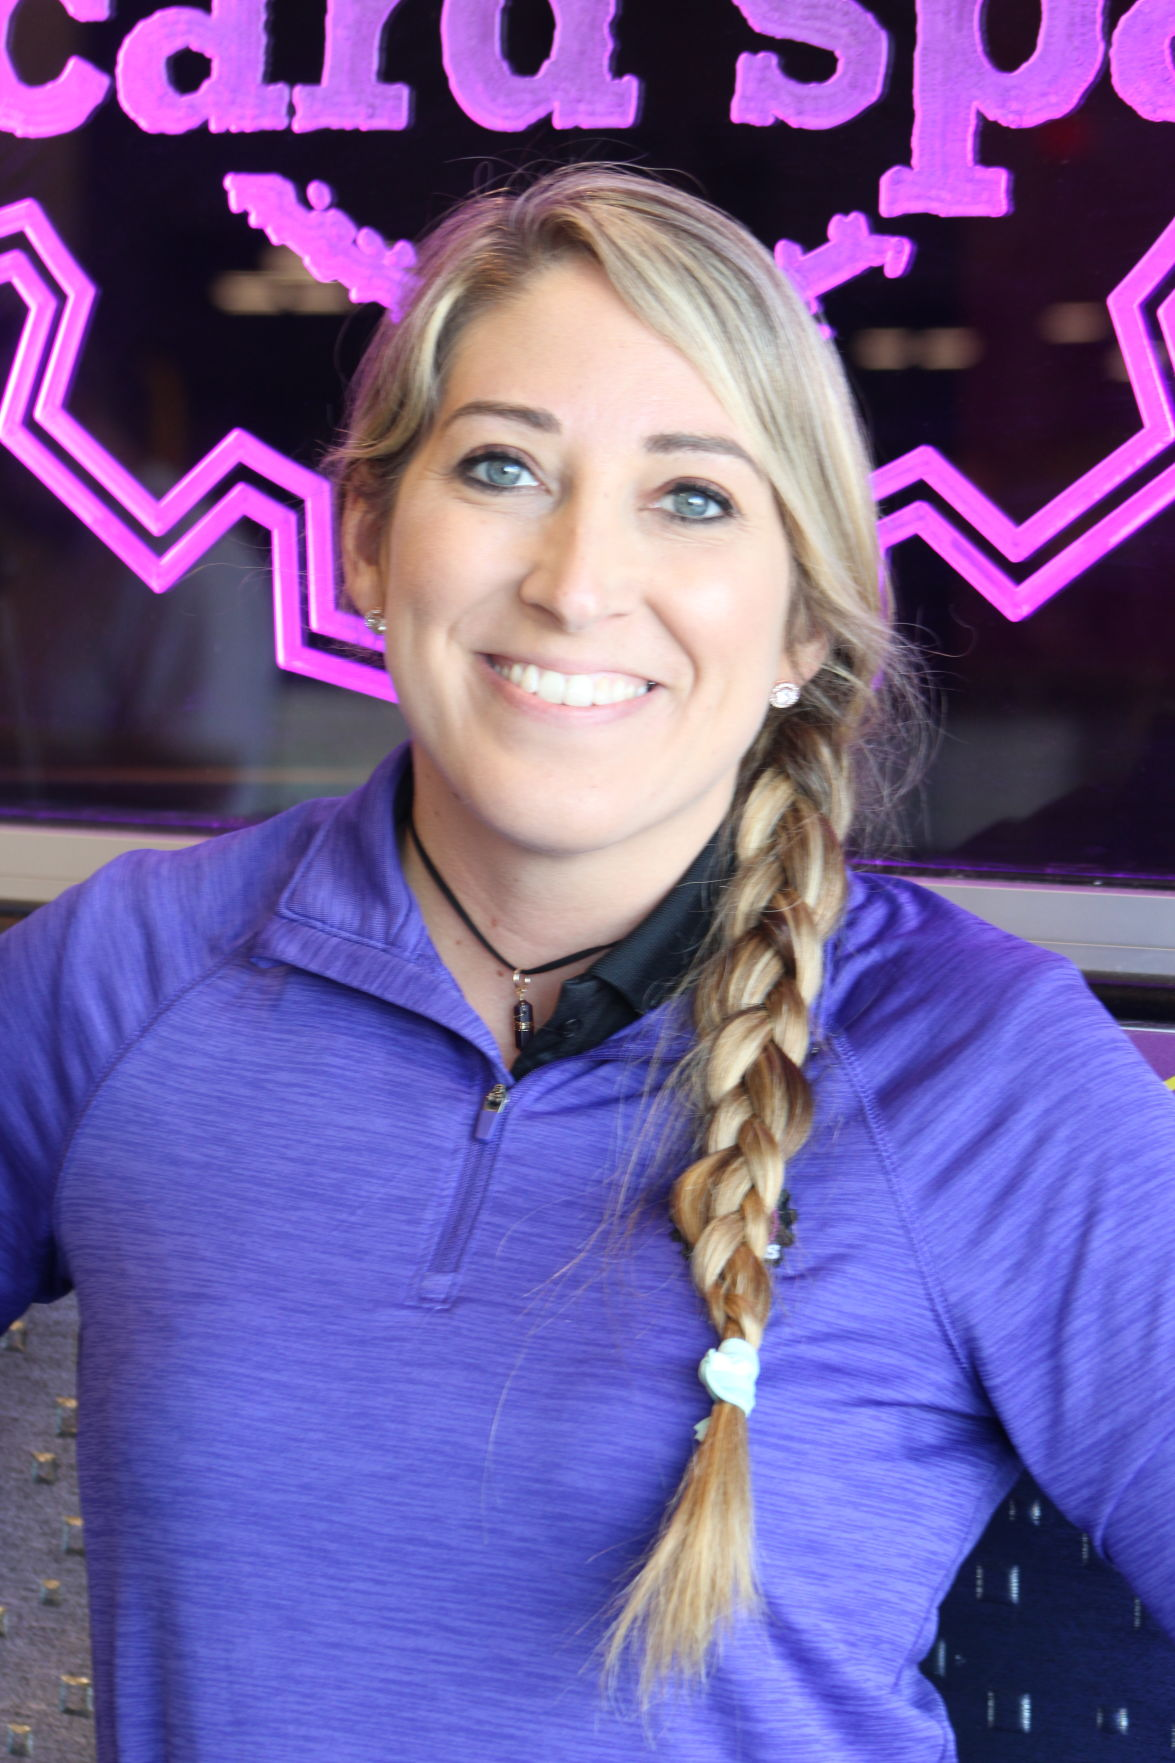 Planet Fitness Clarksville : planet, fitness, clarksville, Planet, Fitness, Albany, FitnessRetro